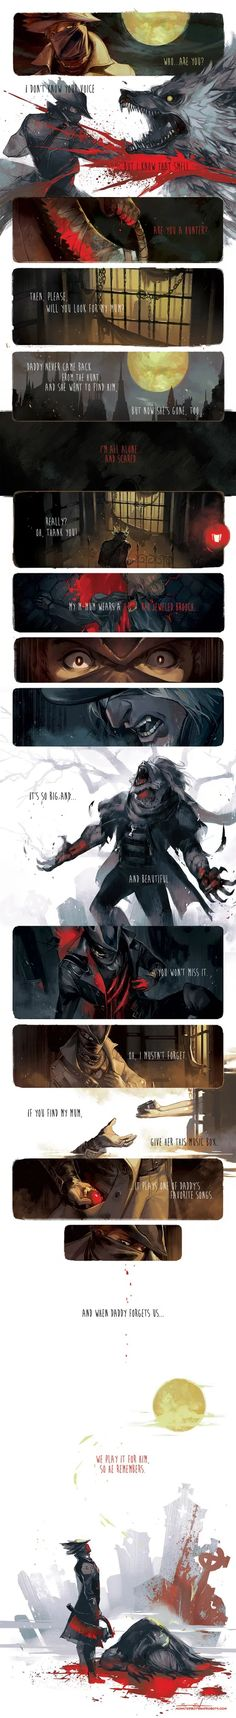 One of my favourite Bloodborne comic strips. I love it when they humanise our hunter. Character Art, Character Design, Bloodborne Art, Soul Game, Dark Souls Art, Old Blood, Video Game Art, Best Funny Pictures, Fantasy Art